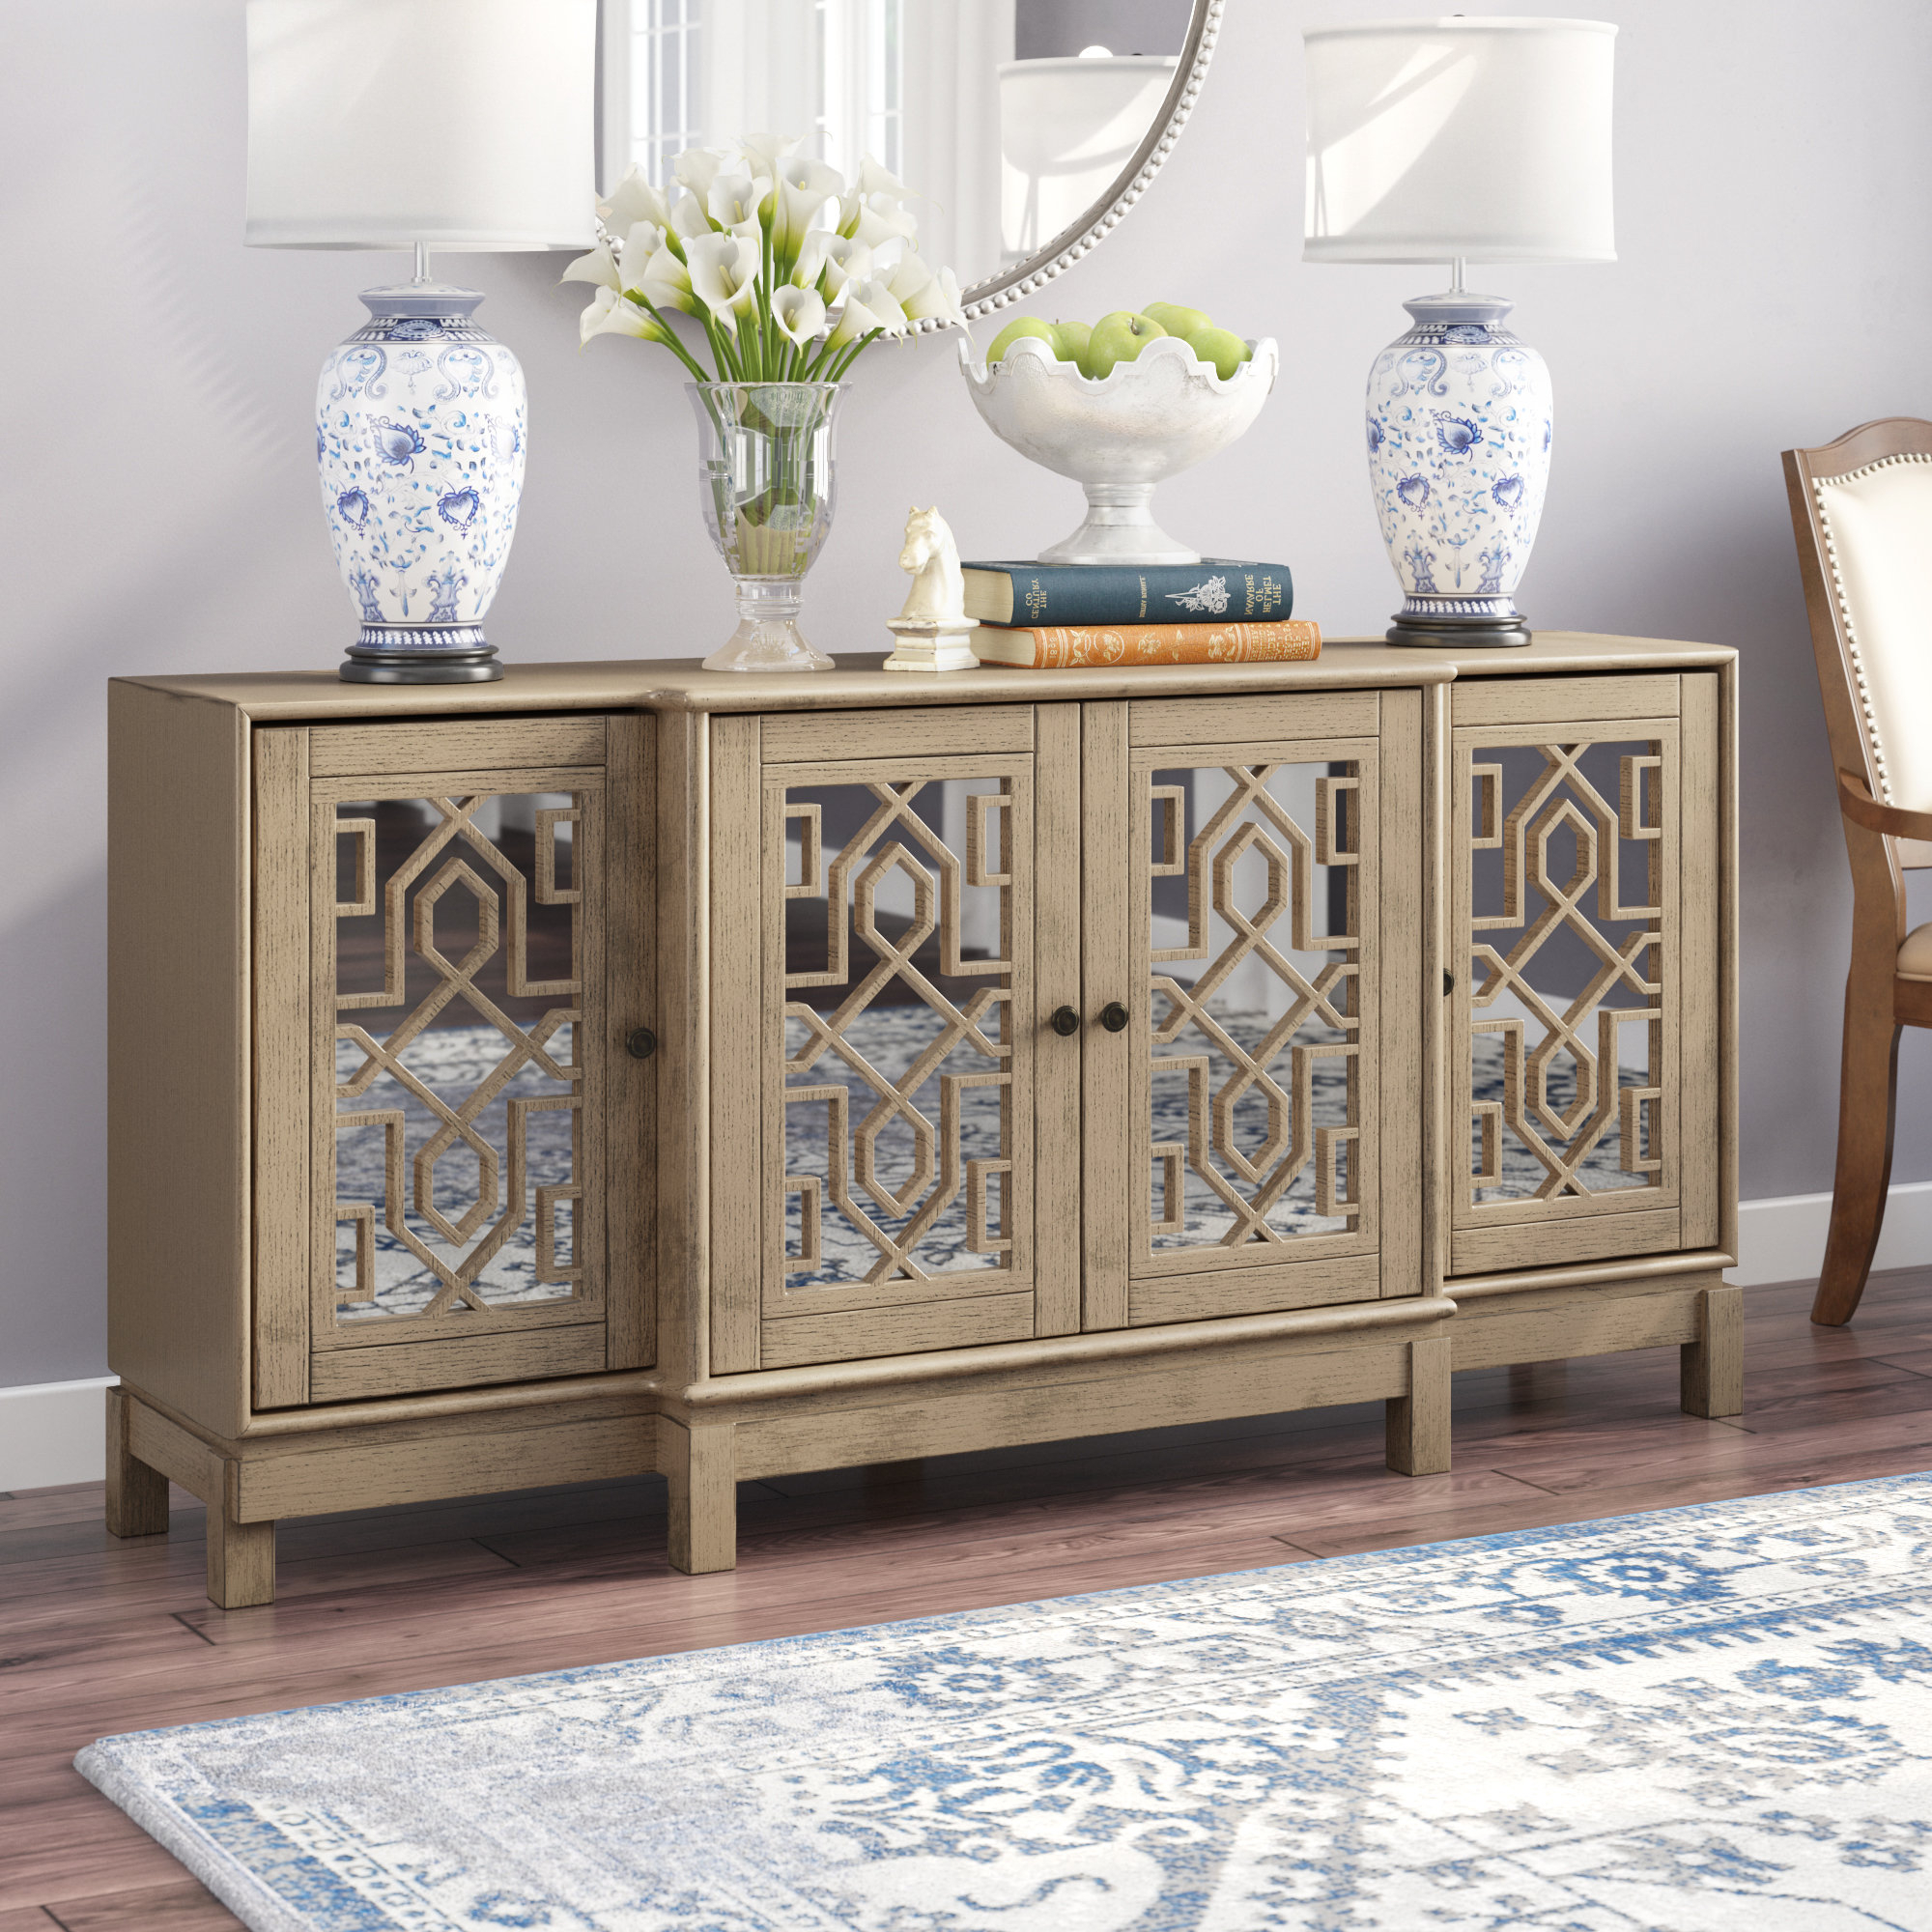 Stillwater Sideboards Regarding Well Known Stillwater Sideboard (Gallery 1 of 20)